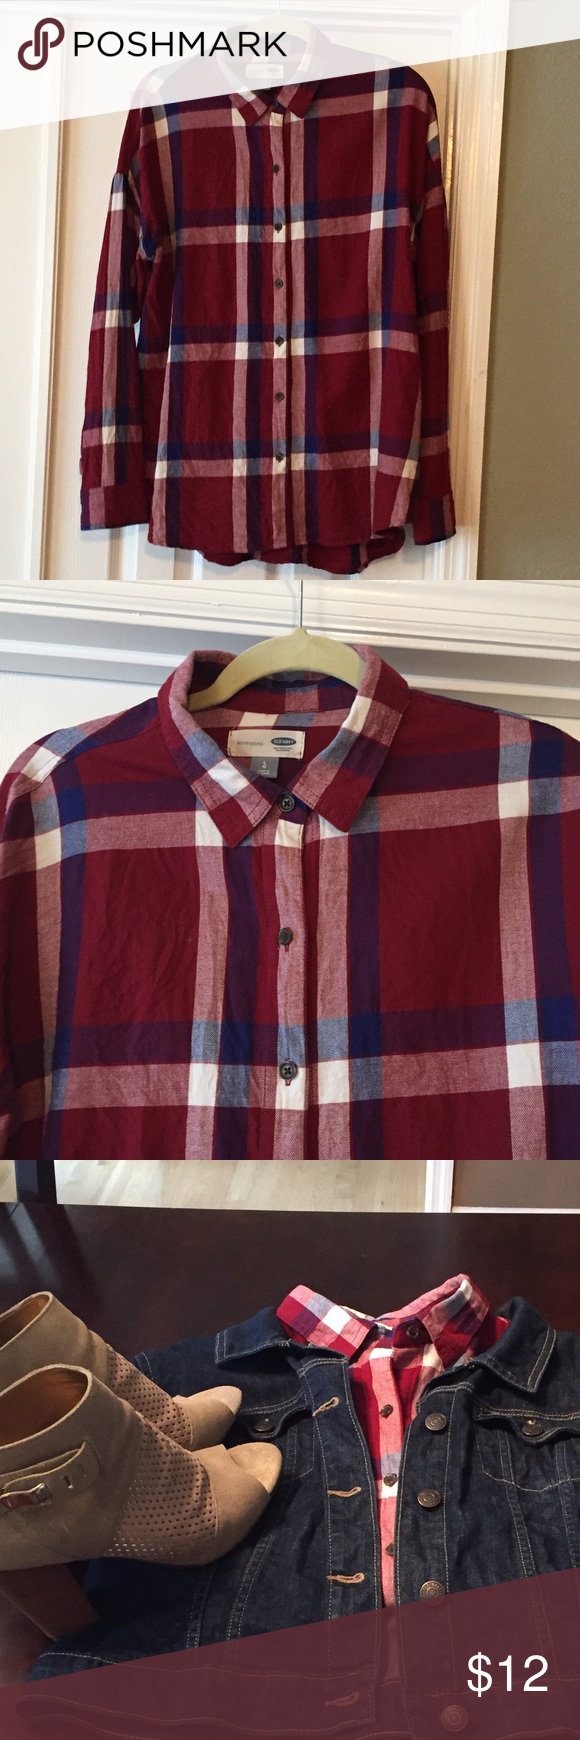 Old Navy flannel plaid shirt. Very cute and perfect for fall! 🍁 Old Navy Tops Blouses